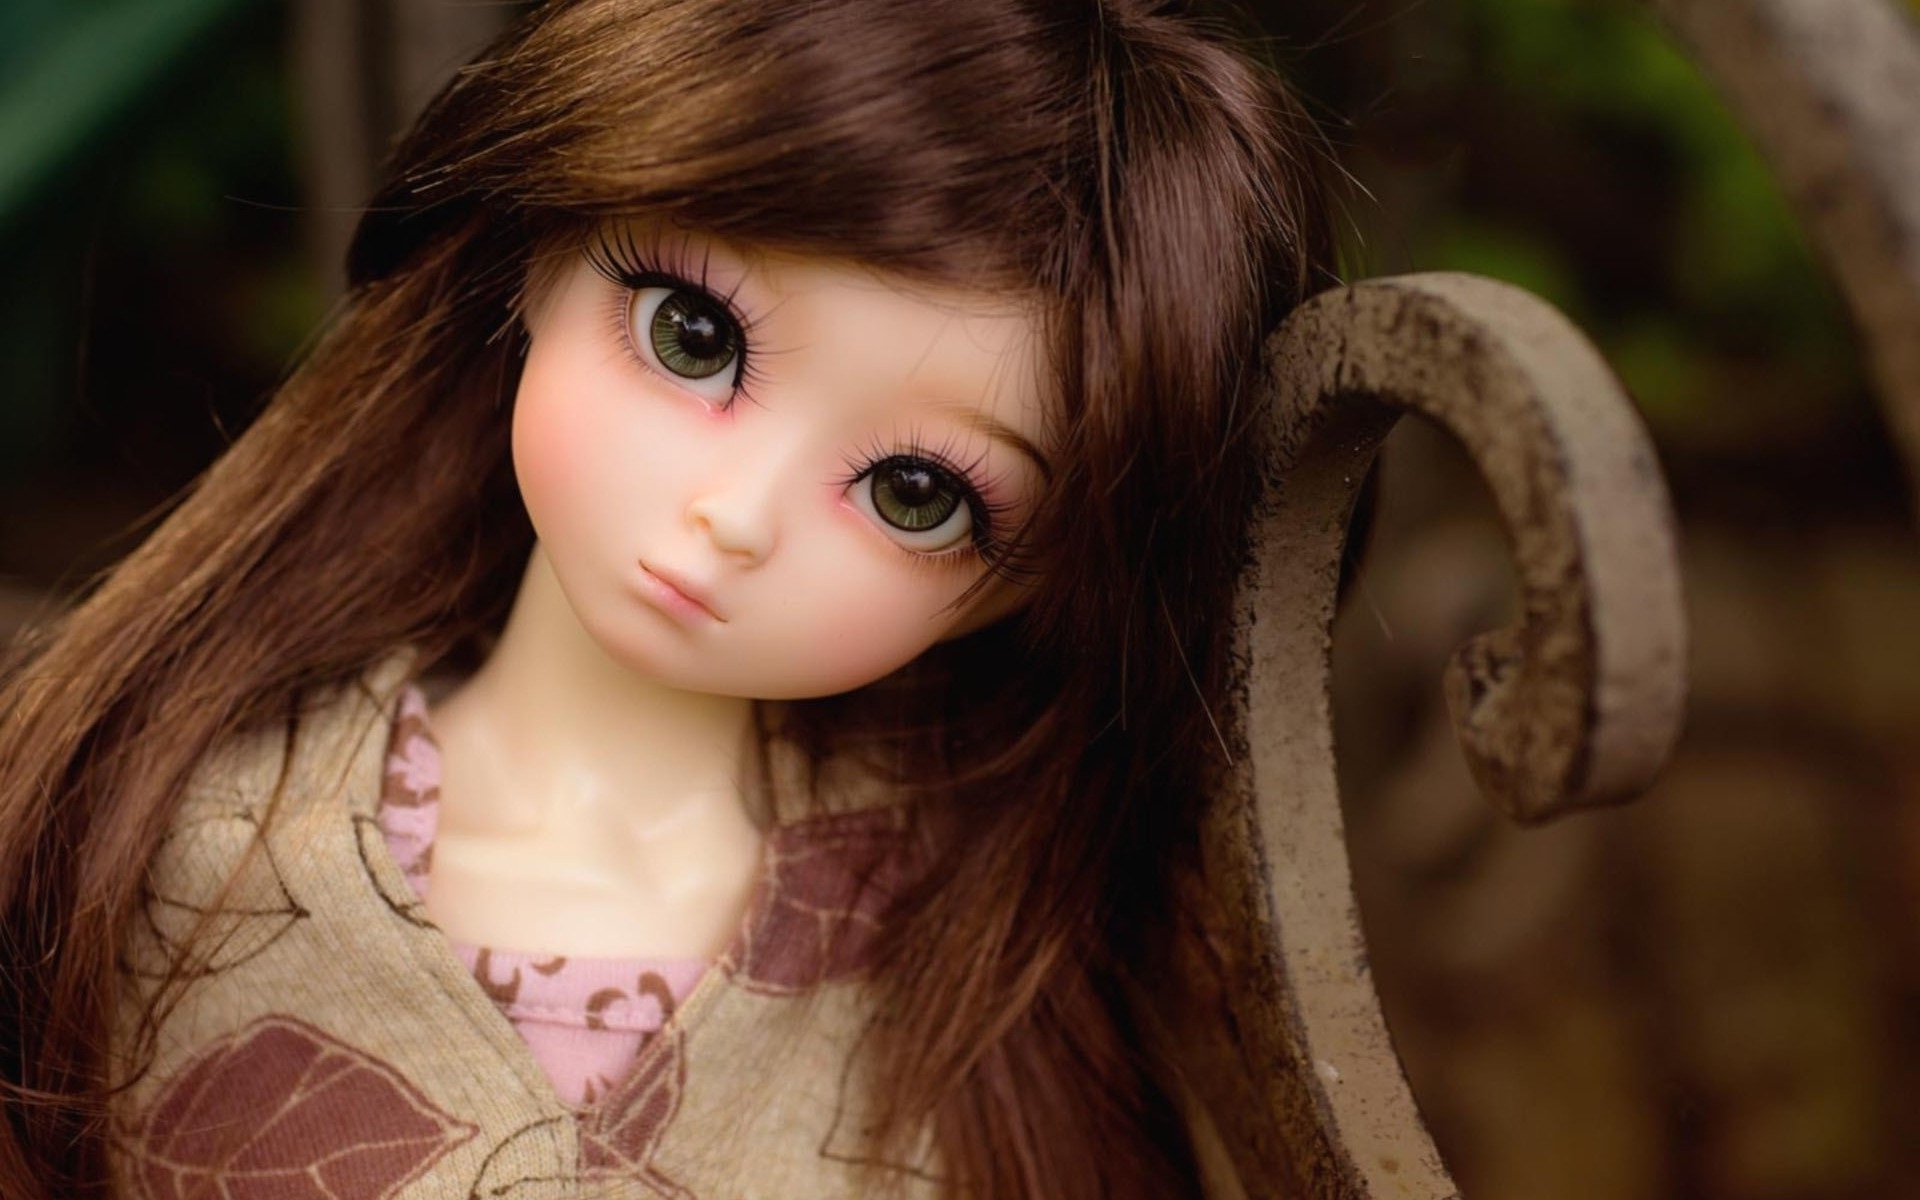 Hd wallpaper doll - Pretty And Innocent Most Beautiful Doll Wallpapers